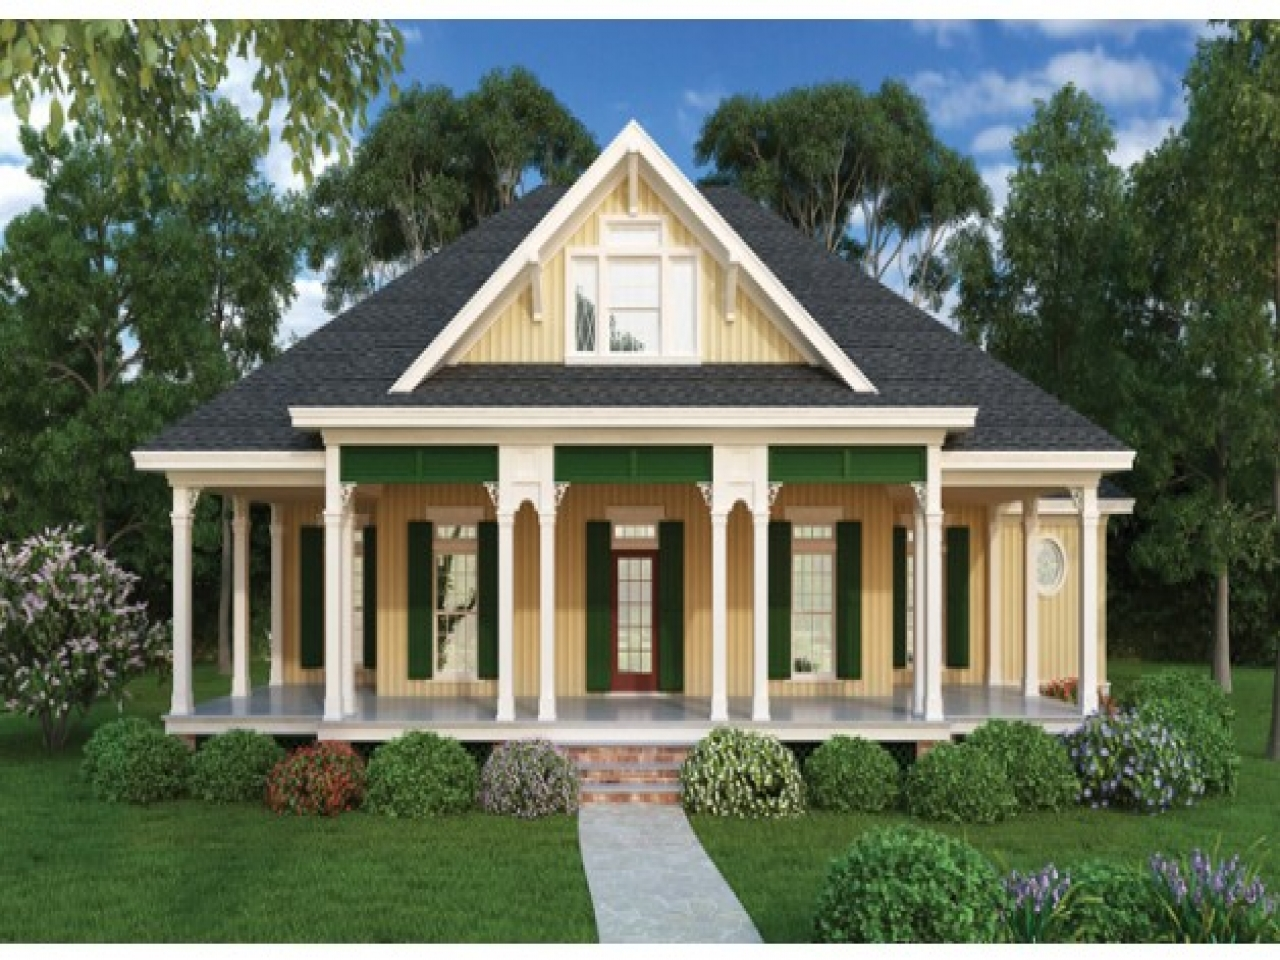 quaint bungalow house plans html with Romantic Cottage House Plans on Tudor Style Bungalow additionally 39bd9790dfc4e462 Inside Tiny Houses Living Tiny House Australia as well Aa457b22044b8dbb 2 Bedroom Cabin Floor Plans Small 2 Bedroom Cottage House Plans additionally The Best Exercises For Your besides Japanese Bungalow.